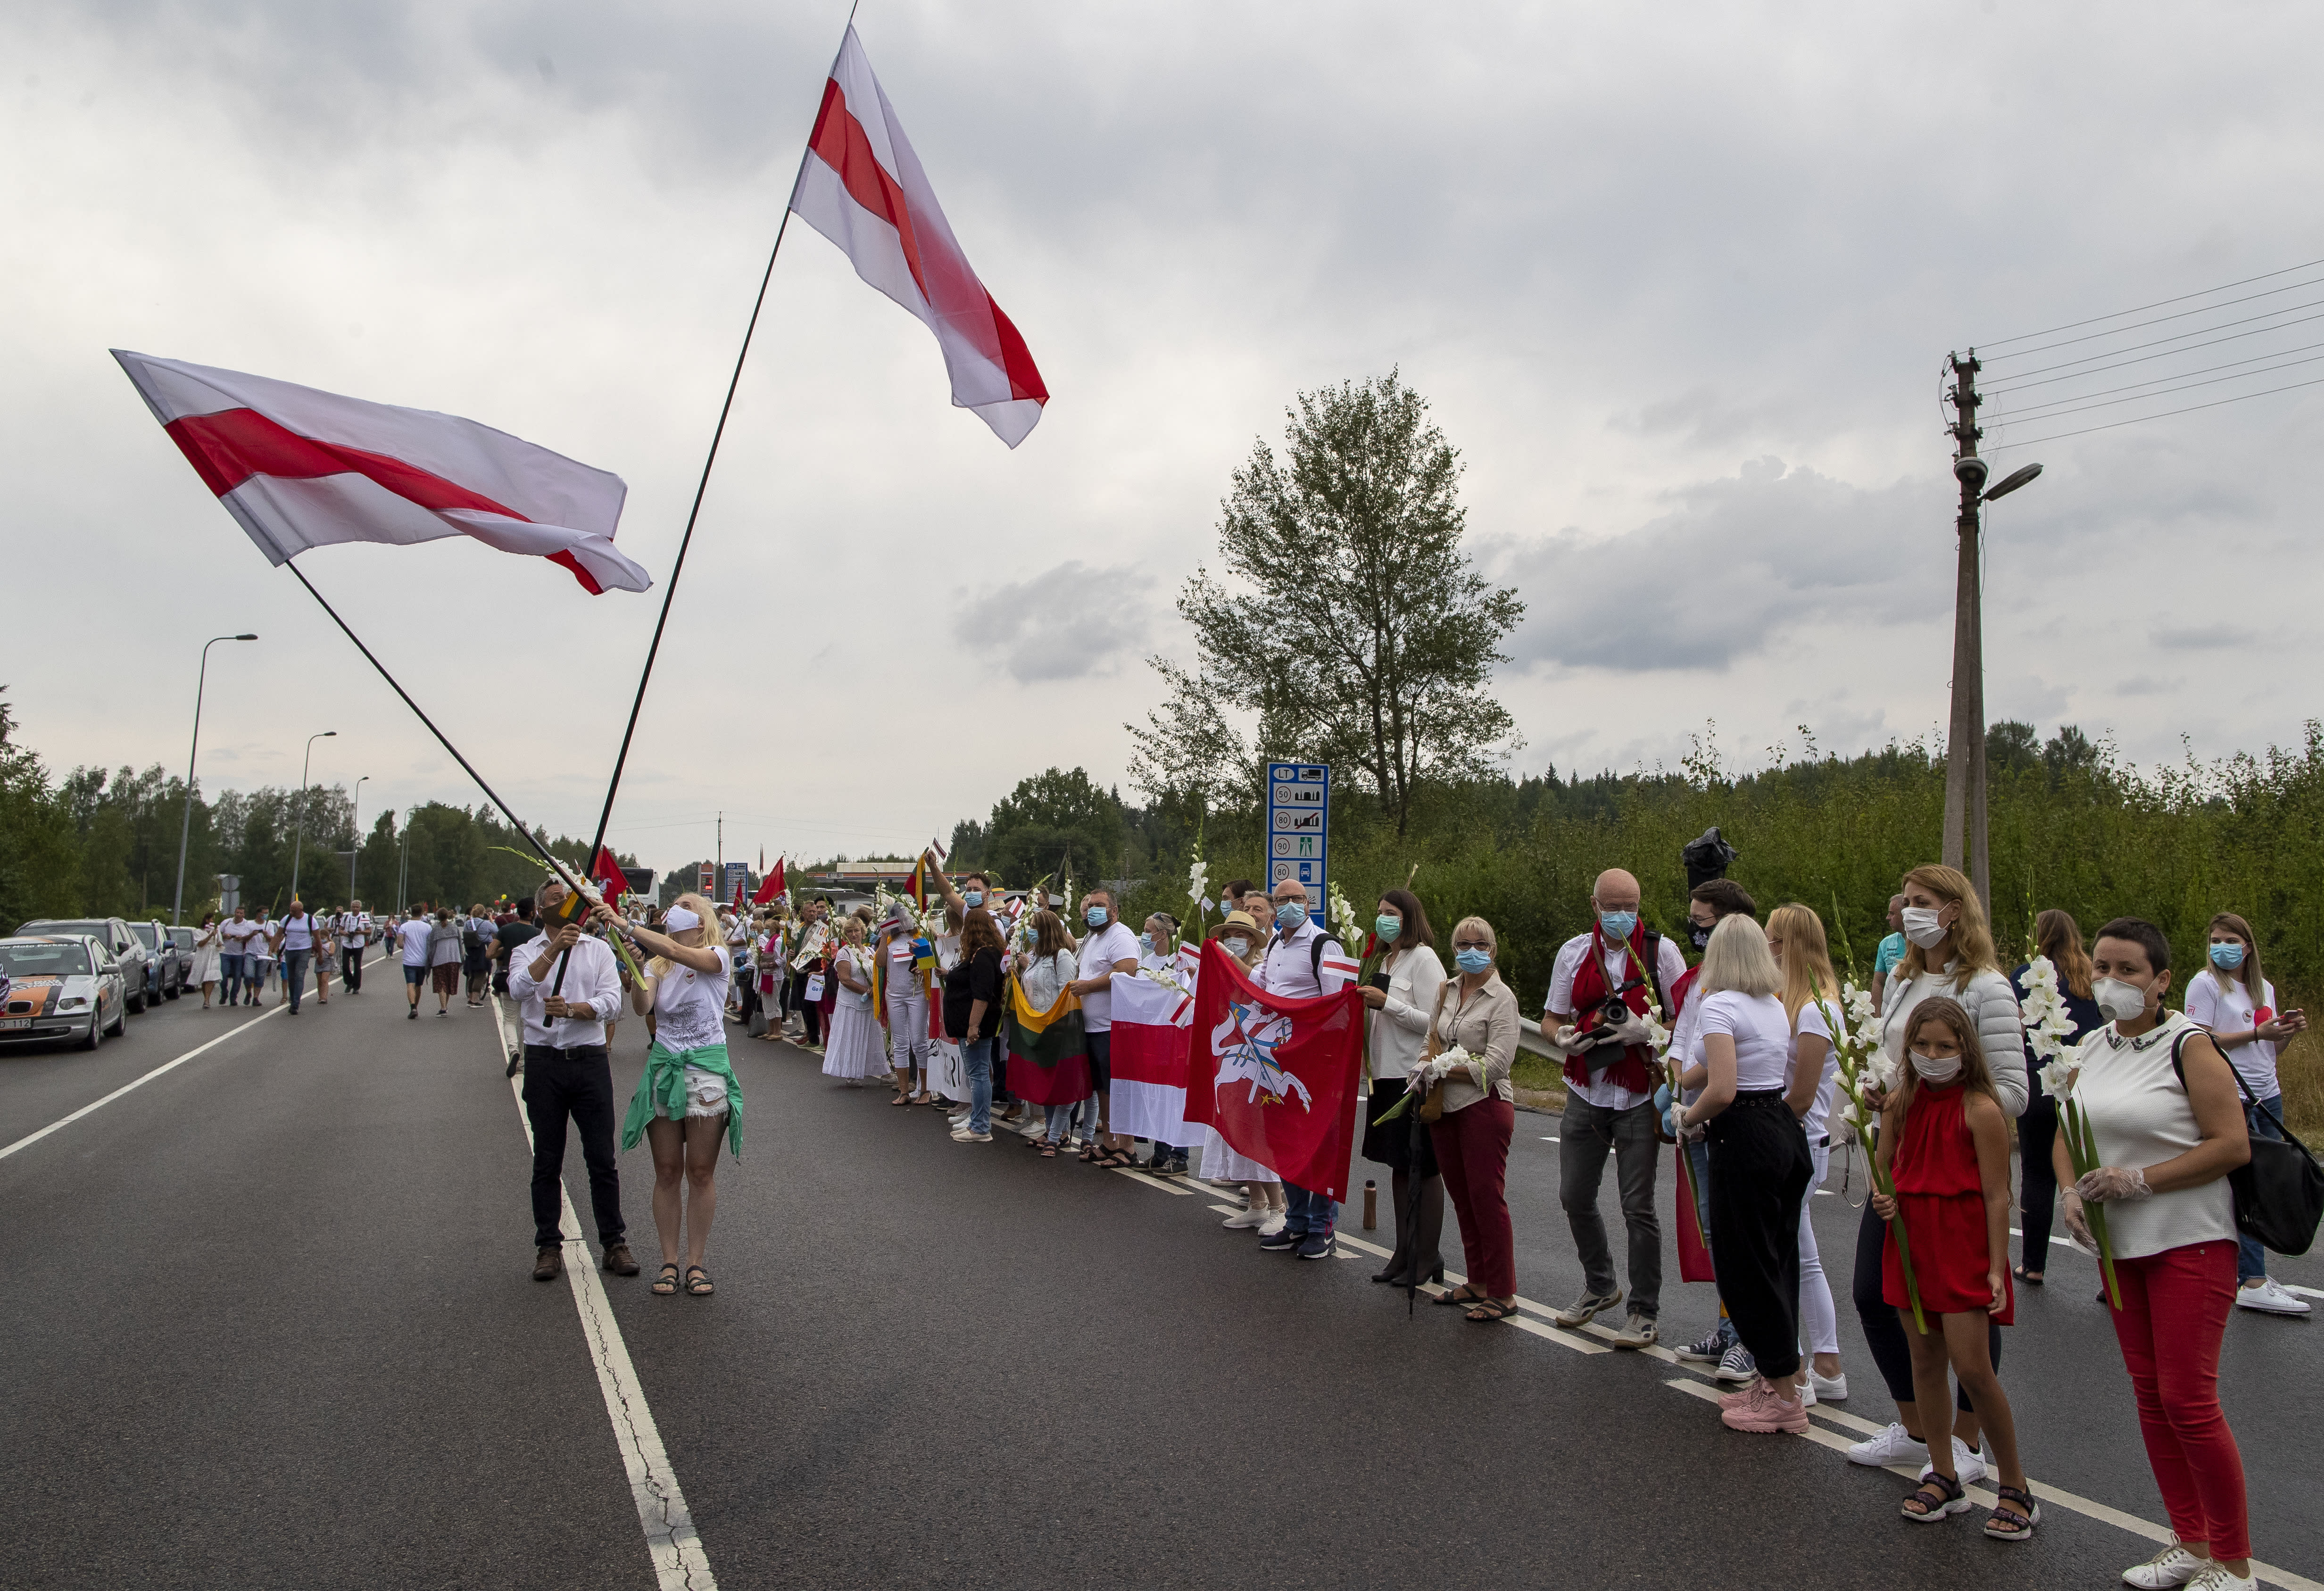 "Supporters of Belarus opposition from Lithuania hold and wave historical Belarusian flags during the ""Freedom Way"", a human chain of about 50,000 strong from Vilnius to the Belarusian border, near Medininkai, Lithuanian-Belarusian border crossing east of Vilnius, Lithuania, Sunday, Aug. 23, 2020. In Aug. 23, 1989, around 2 million Lithuanians, Latvians, and Estonians joined forces in a living 600 km (375 mile) long human chain Baltic Way, thus demonstrating their desire to be free. Now, Lithuania is expressing solidarity with the people of Belarus, who are fighting for freedom today. (AP Photo/Mindaugas Kulbis)"